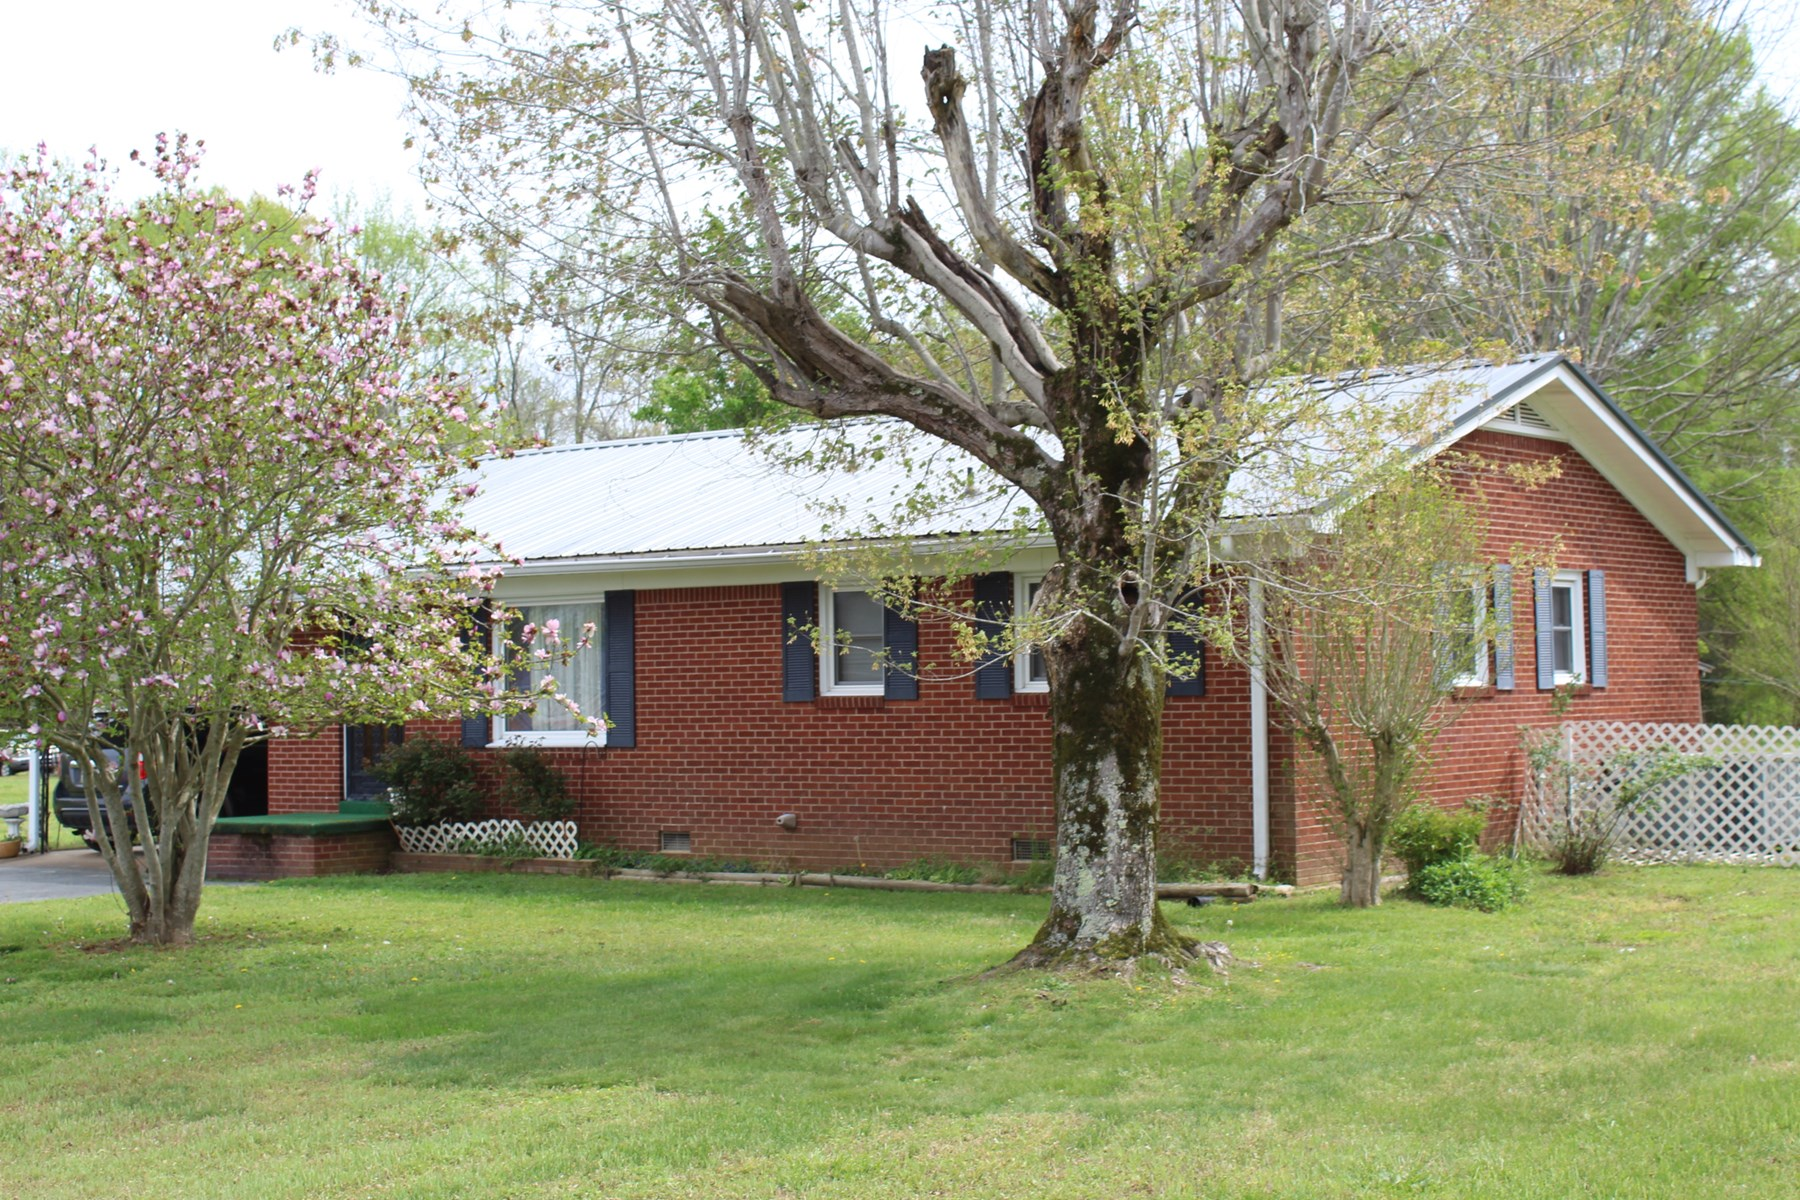 3 BEDROOM HOME FOR SALE IN TN WITH FRUIT TREES & STORAGE BLD